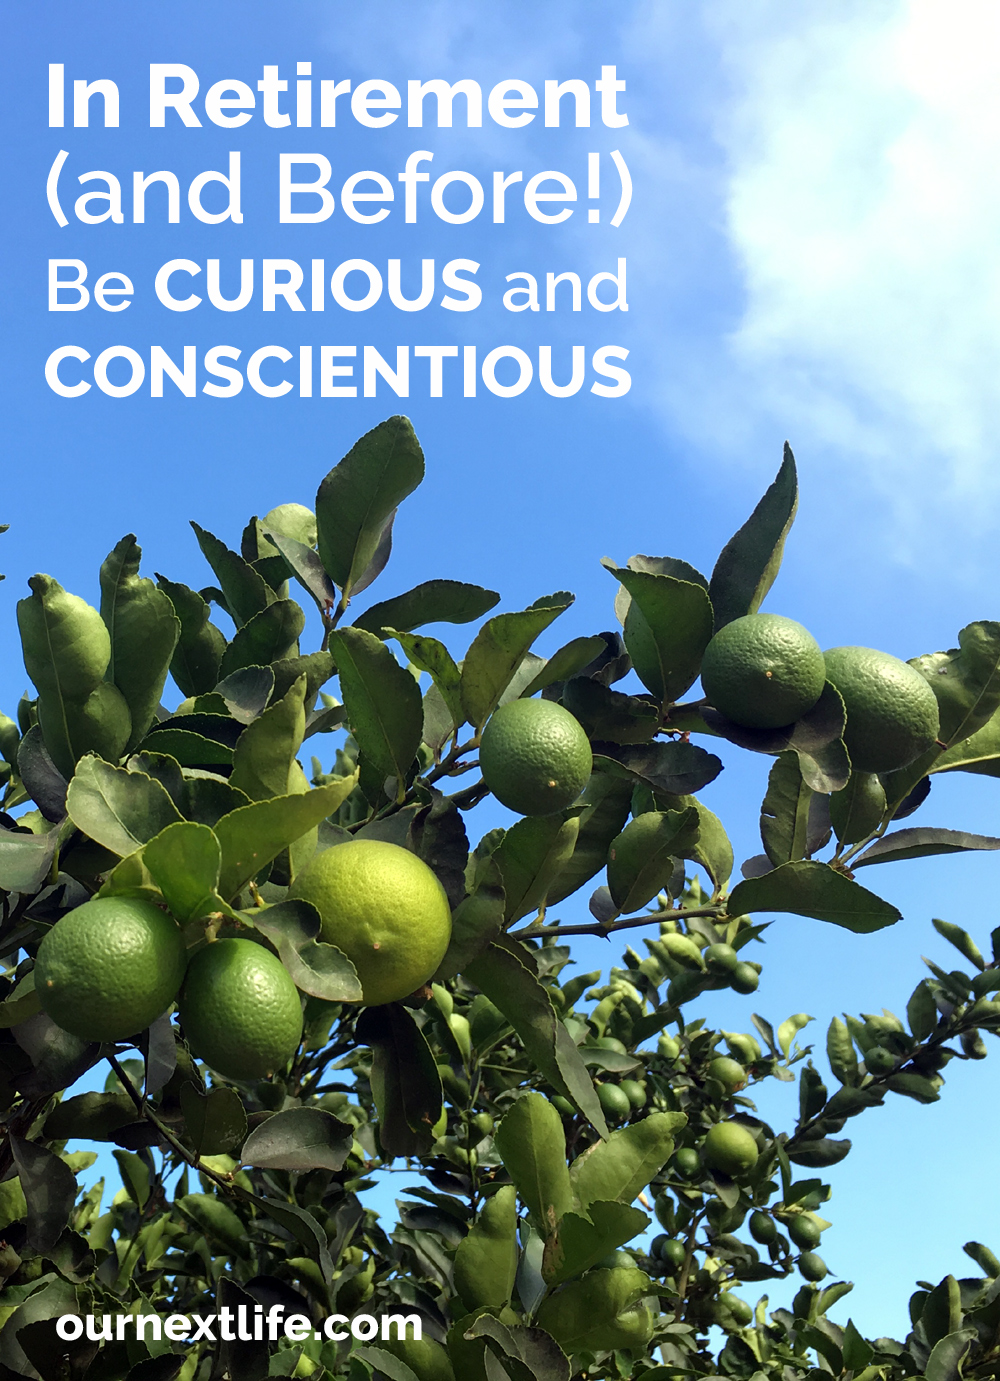 In Retirement (and Before!) Be Curious and Conscientious // Curiosity and conscientiousness are linked to happiness and longevity, and that's so important in retirement!